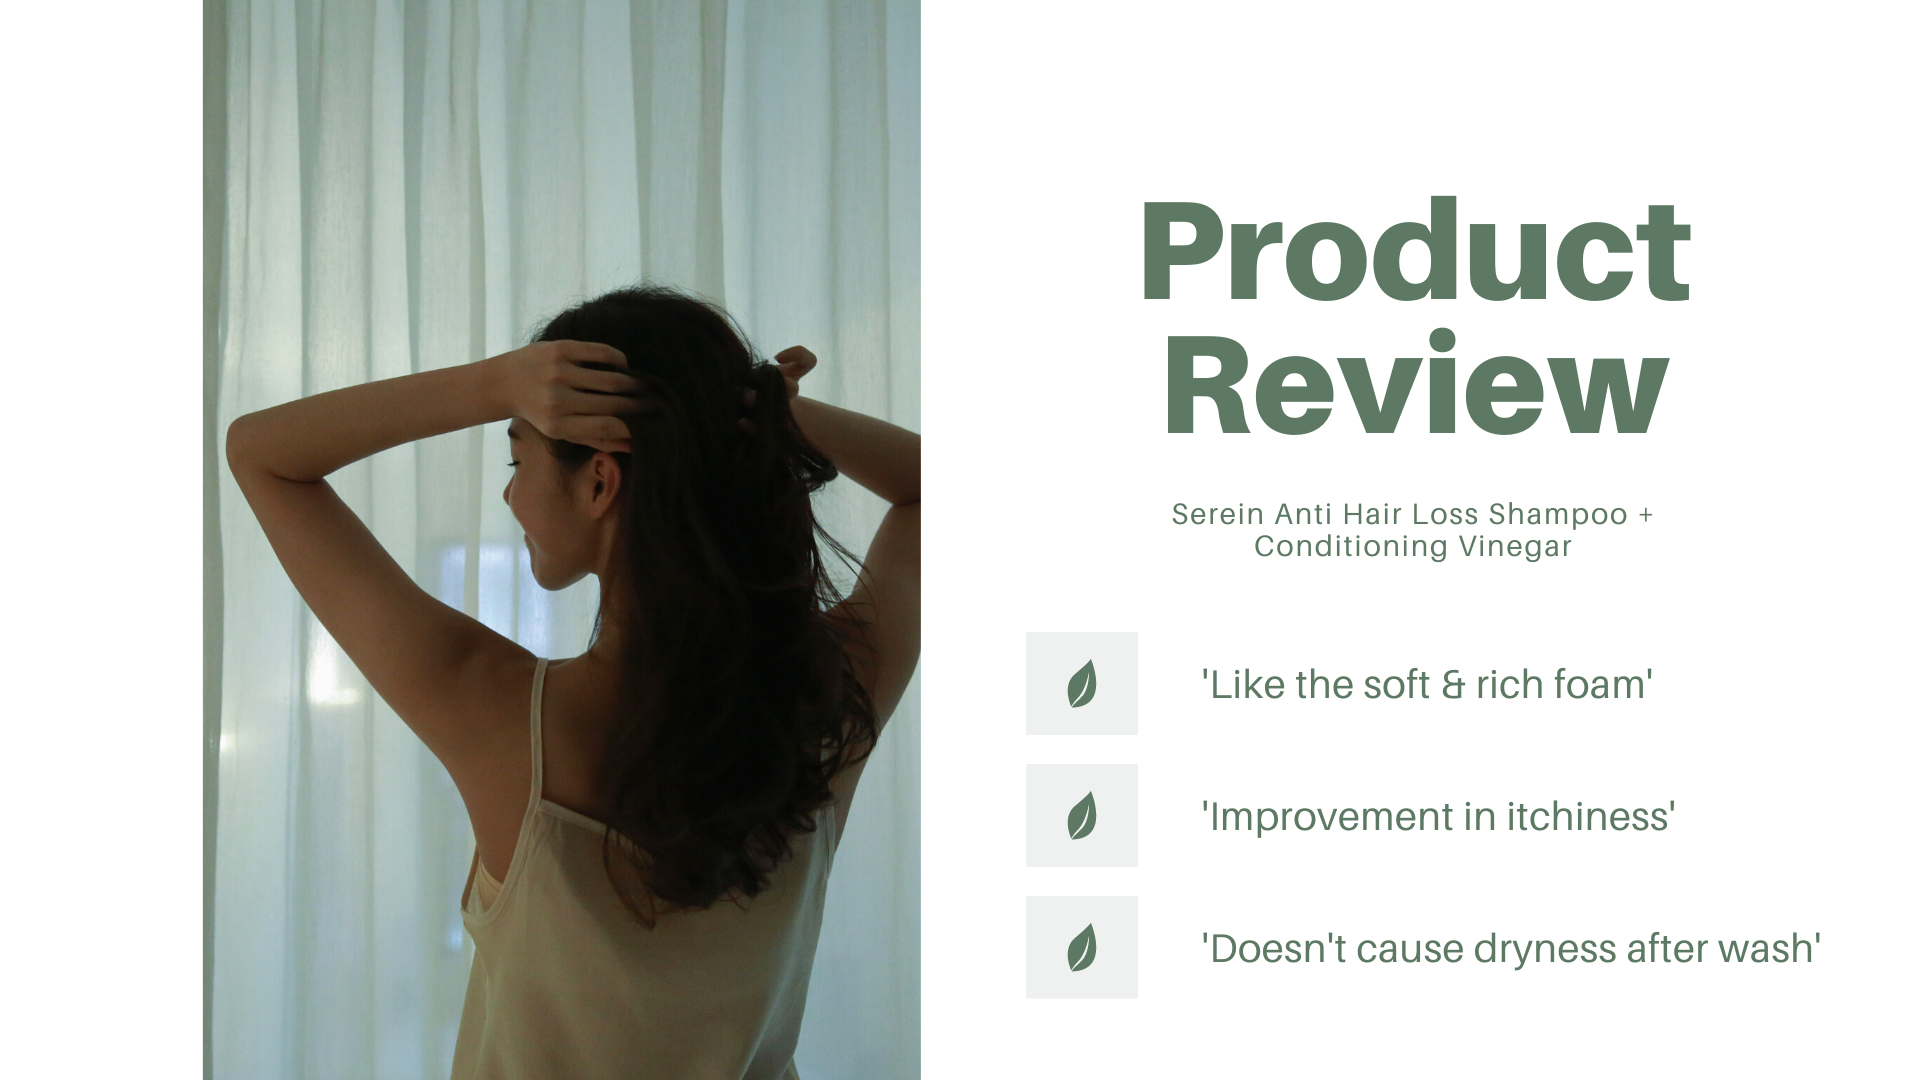 Cosmic Moment Serein Anti Hair Loss Shampoo Conditioner Product Review